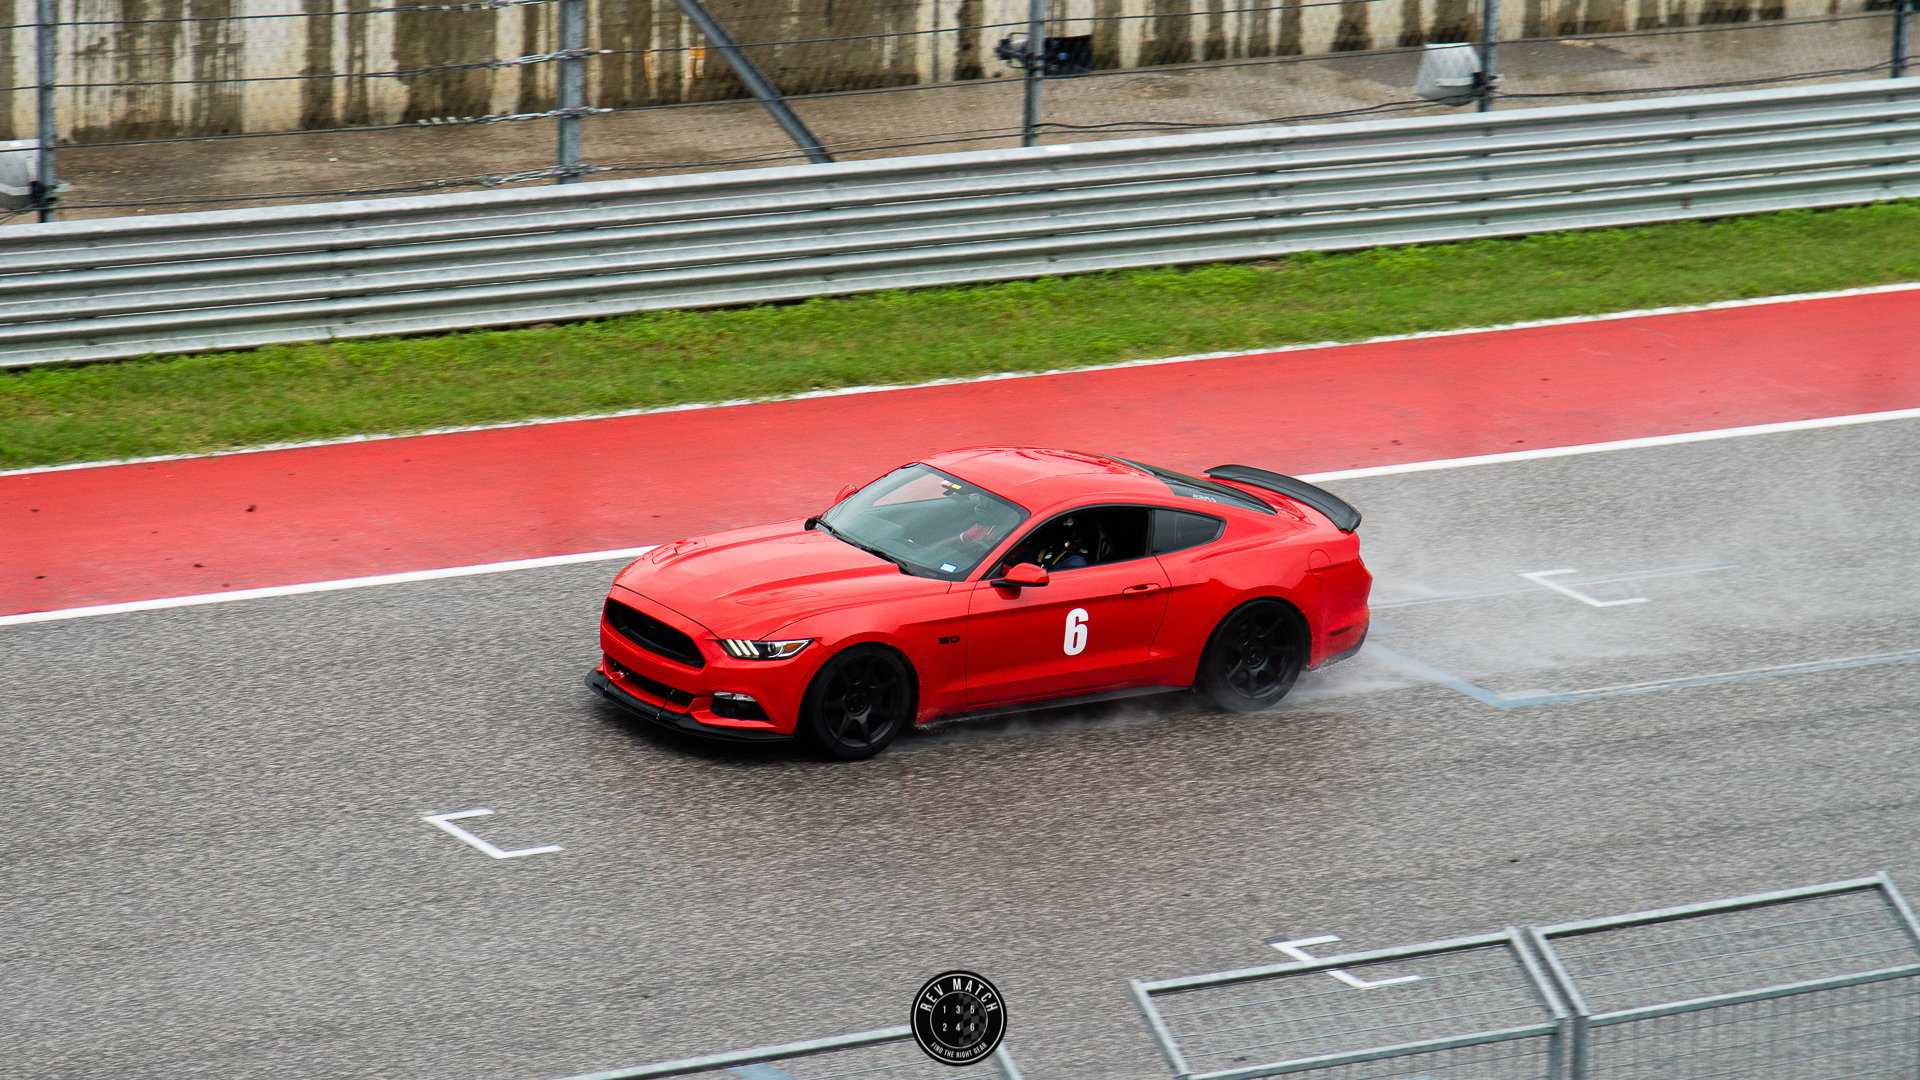 Edge Addict COTA May 2019 Rev Match Media-46.jpg